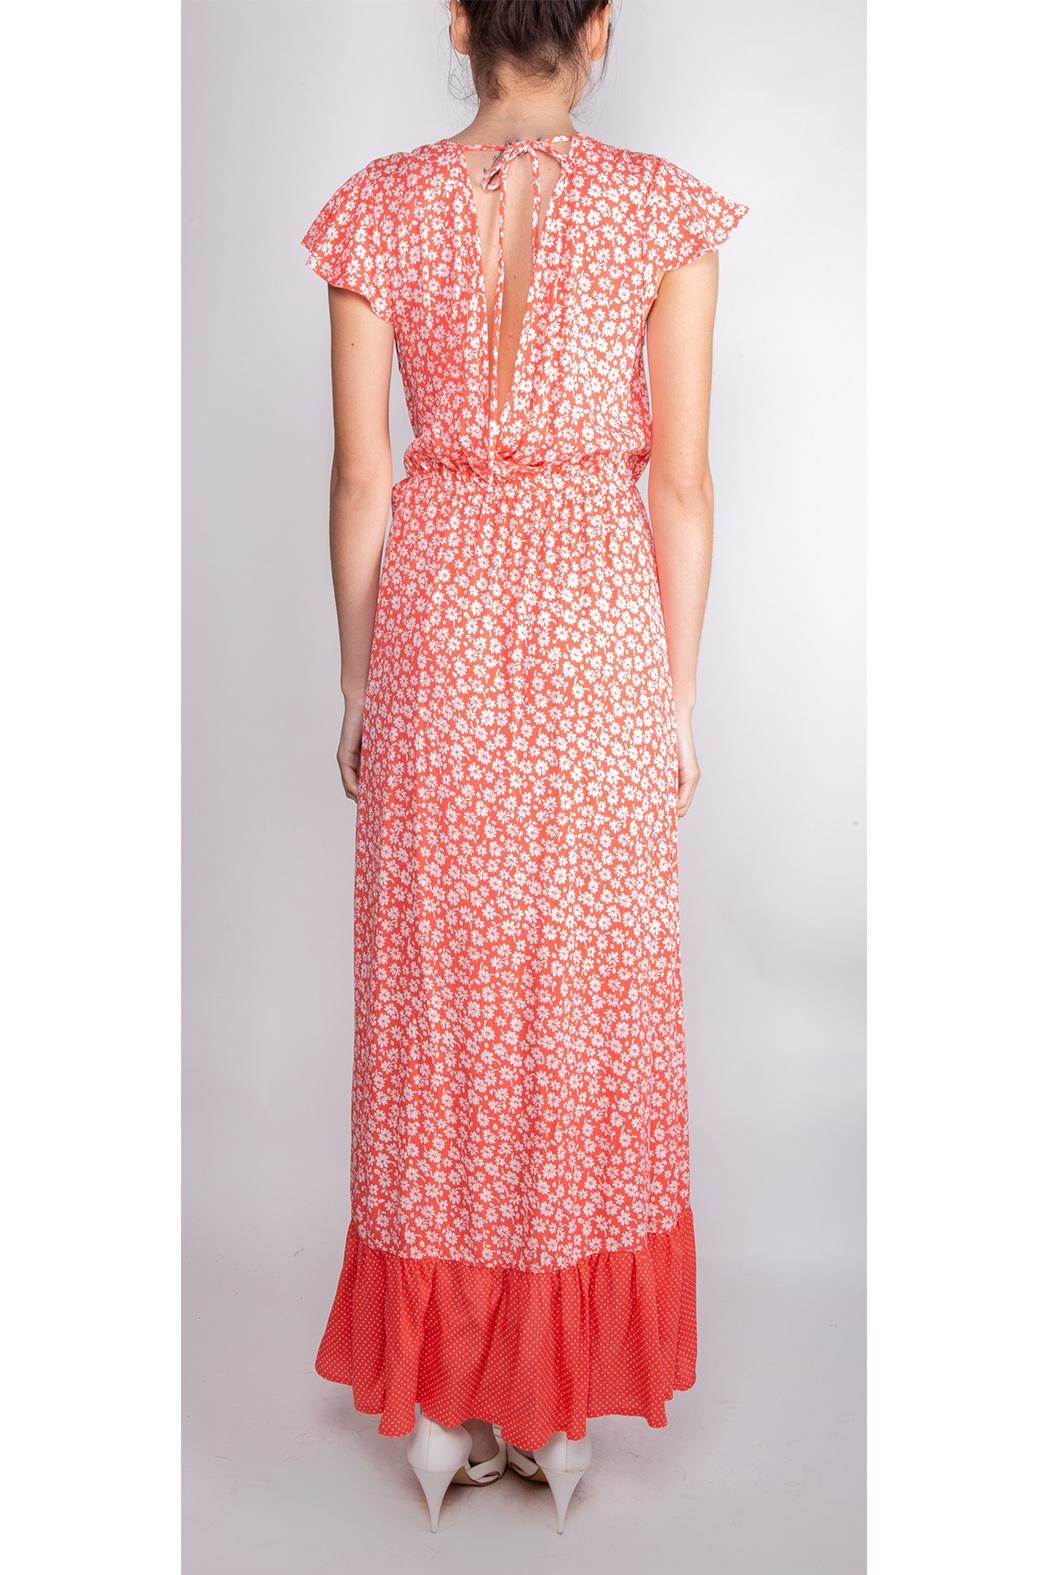 Illa Illa Happiness Floral Wrap-Dress - Side Cropped Image